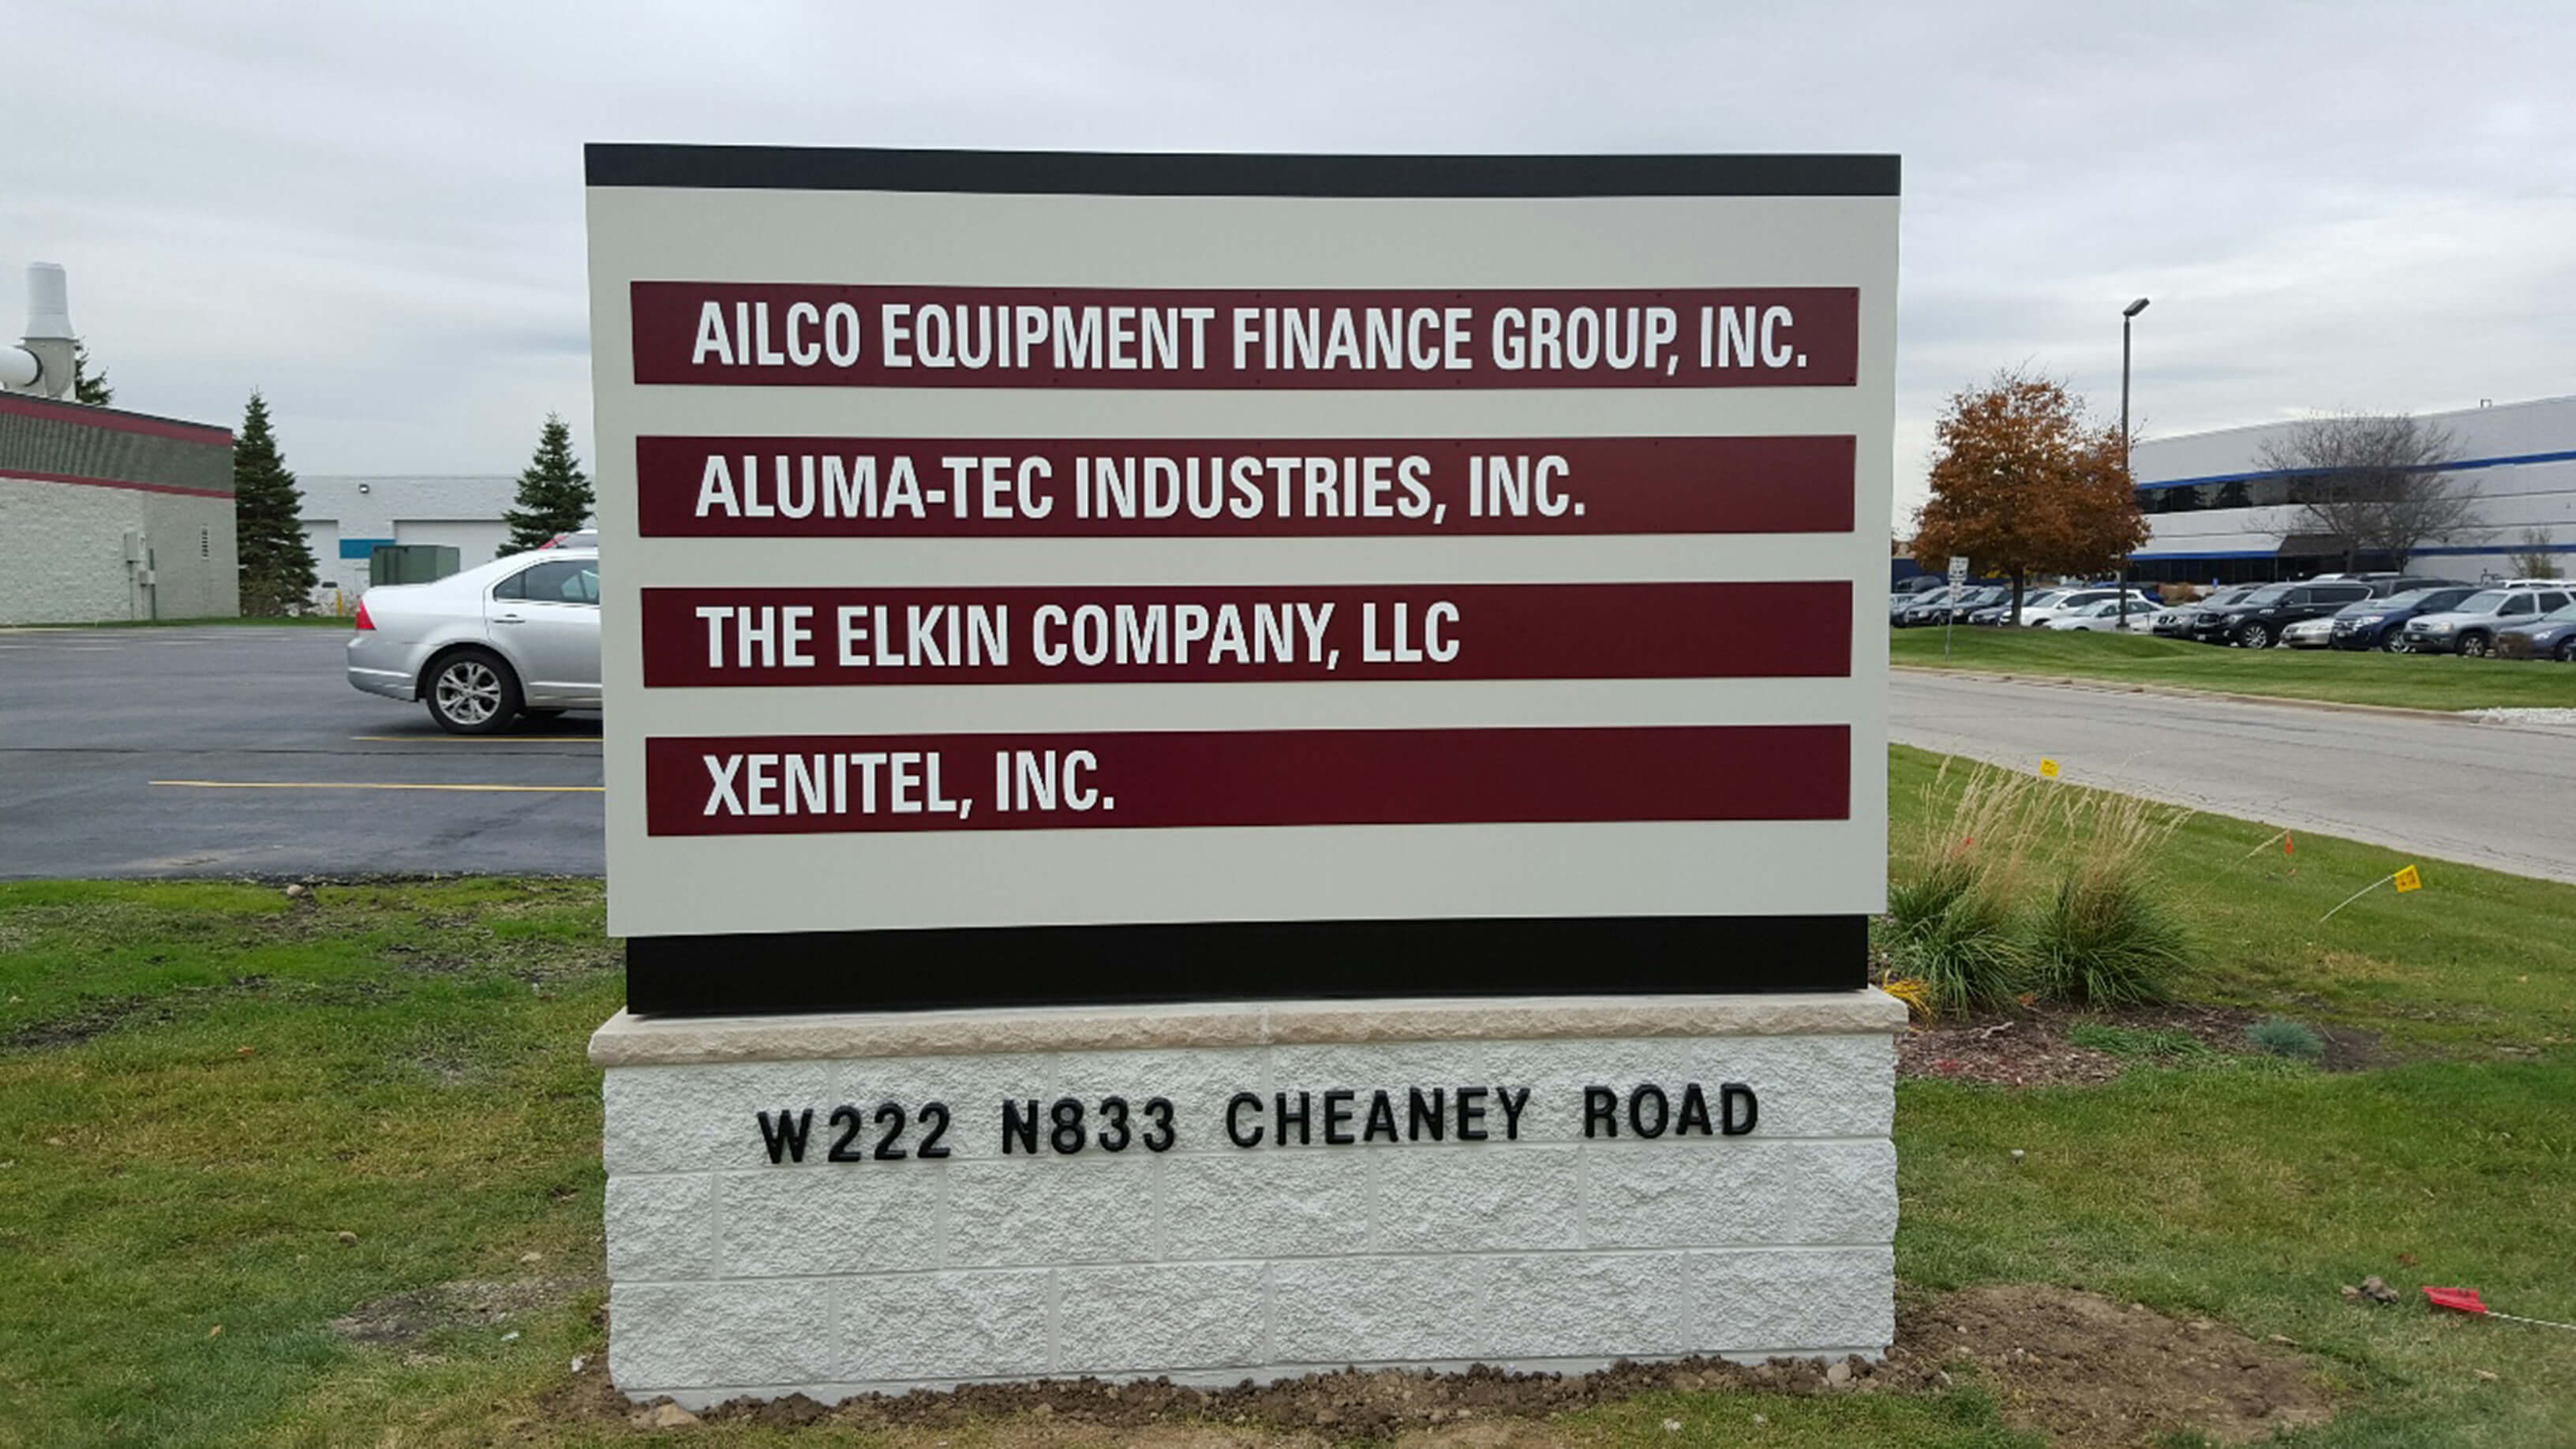 Outdoor professional business monument sign